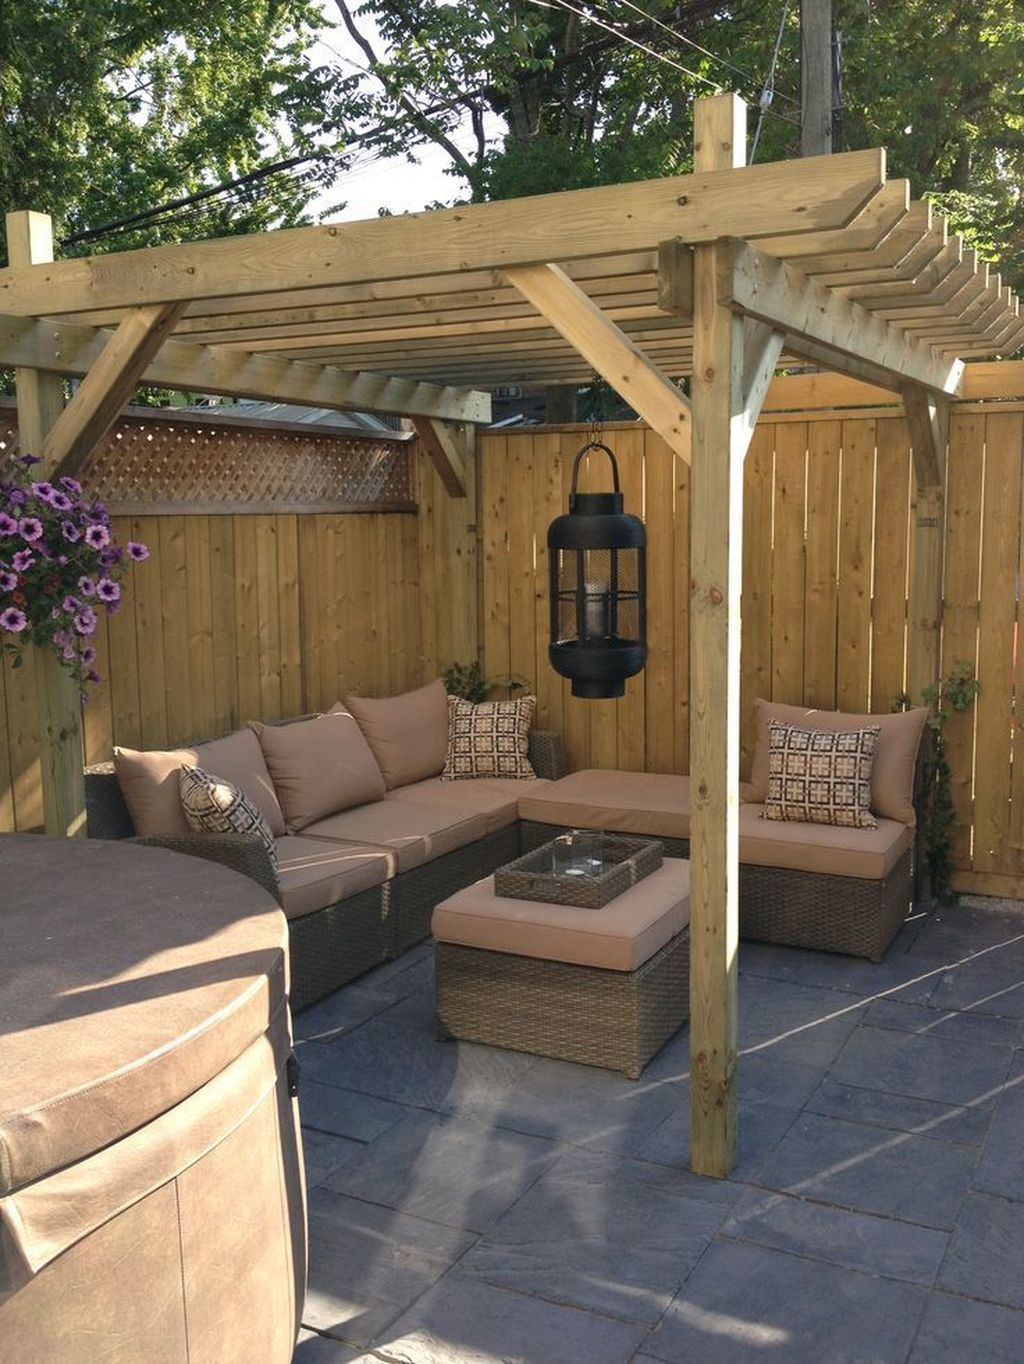 Captivating Diy Patio Gardens Ideas On A Budget To Try 21